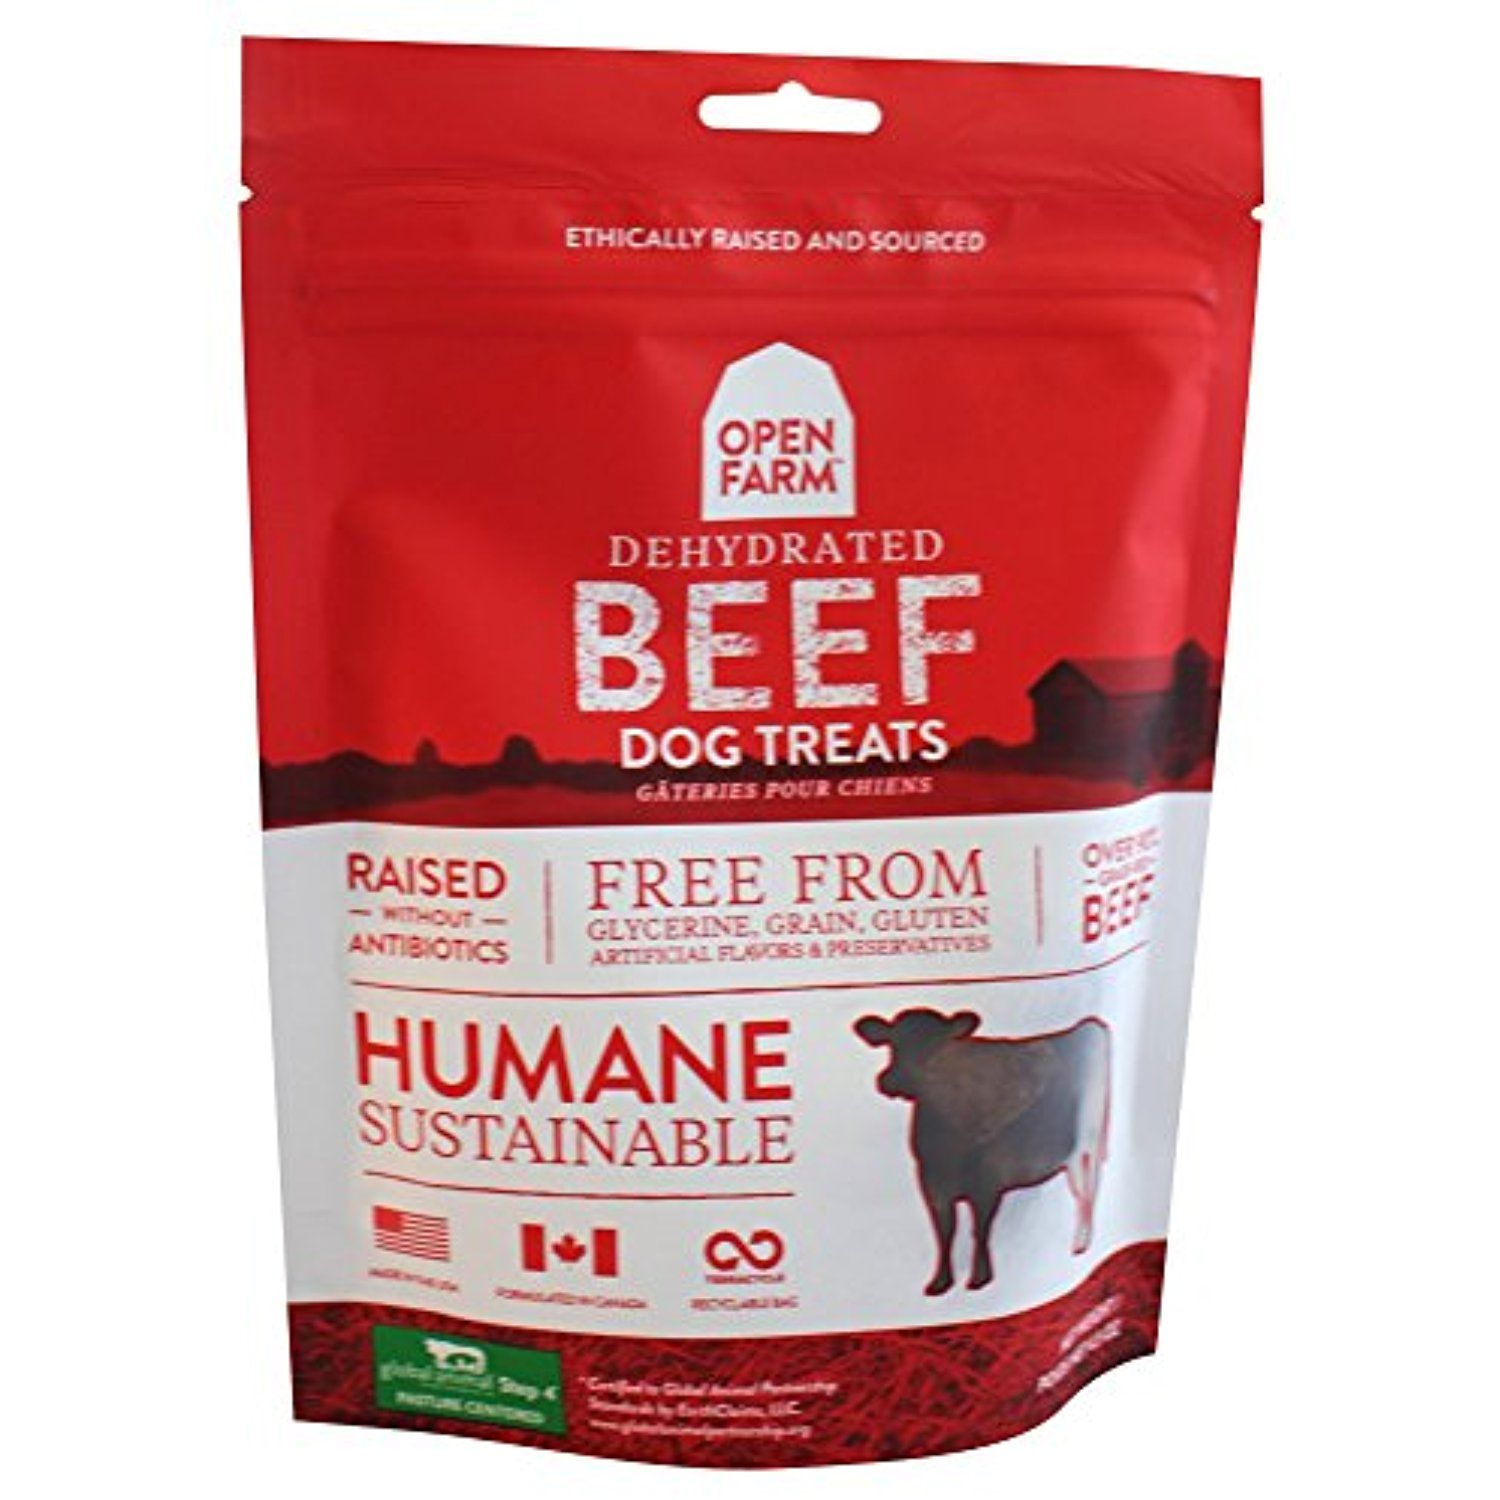 Open farm treat dehydrated beef 45oz you can read